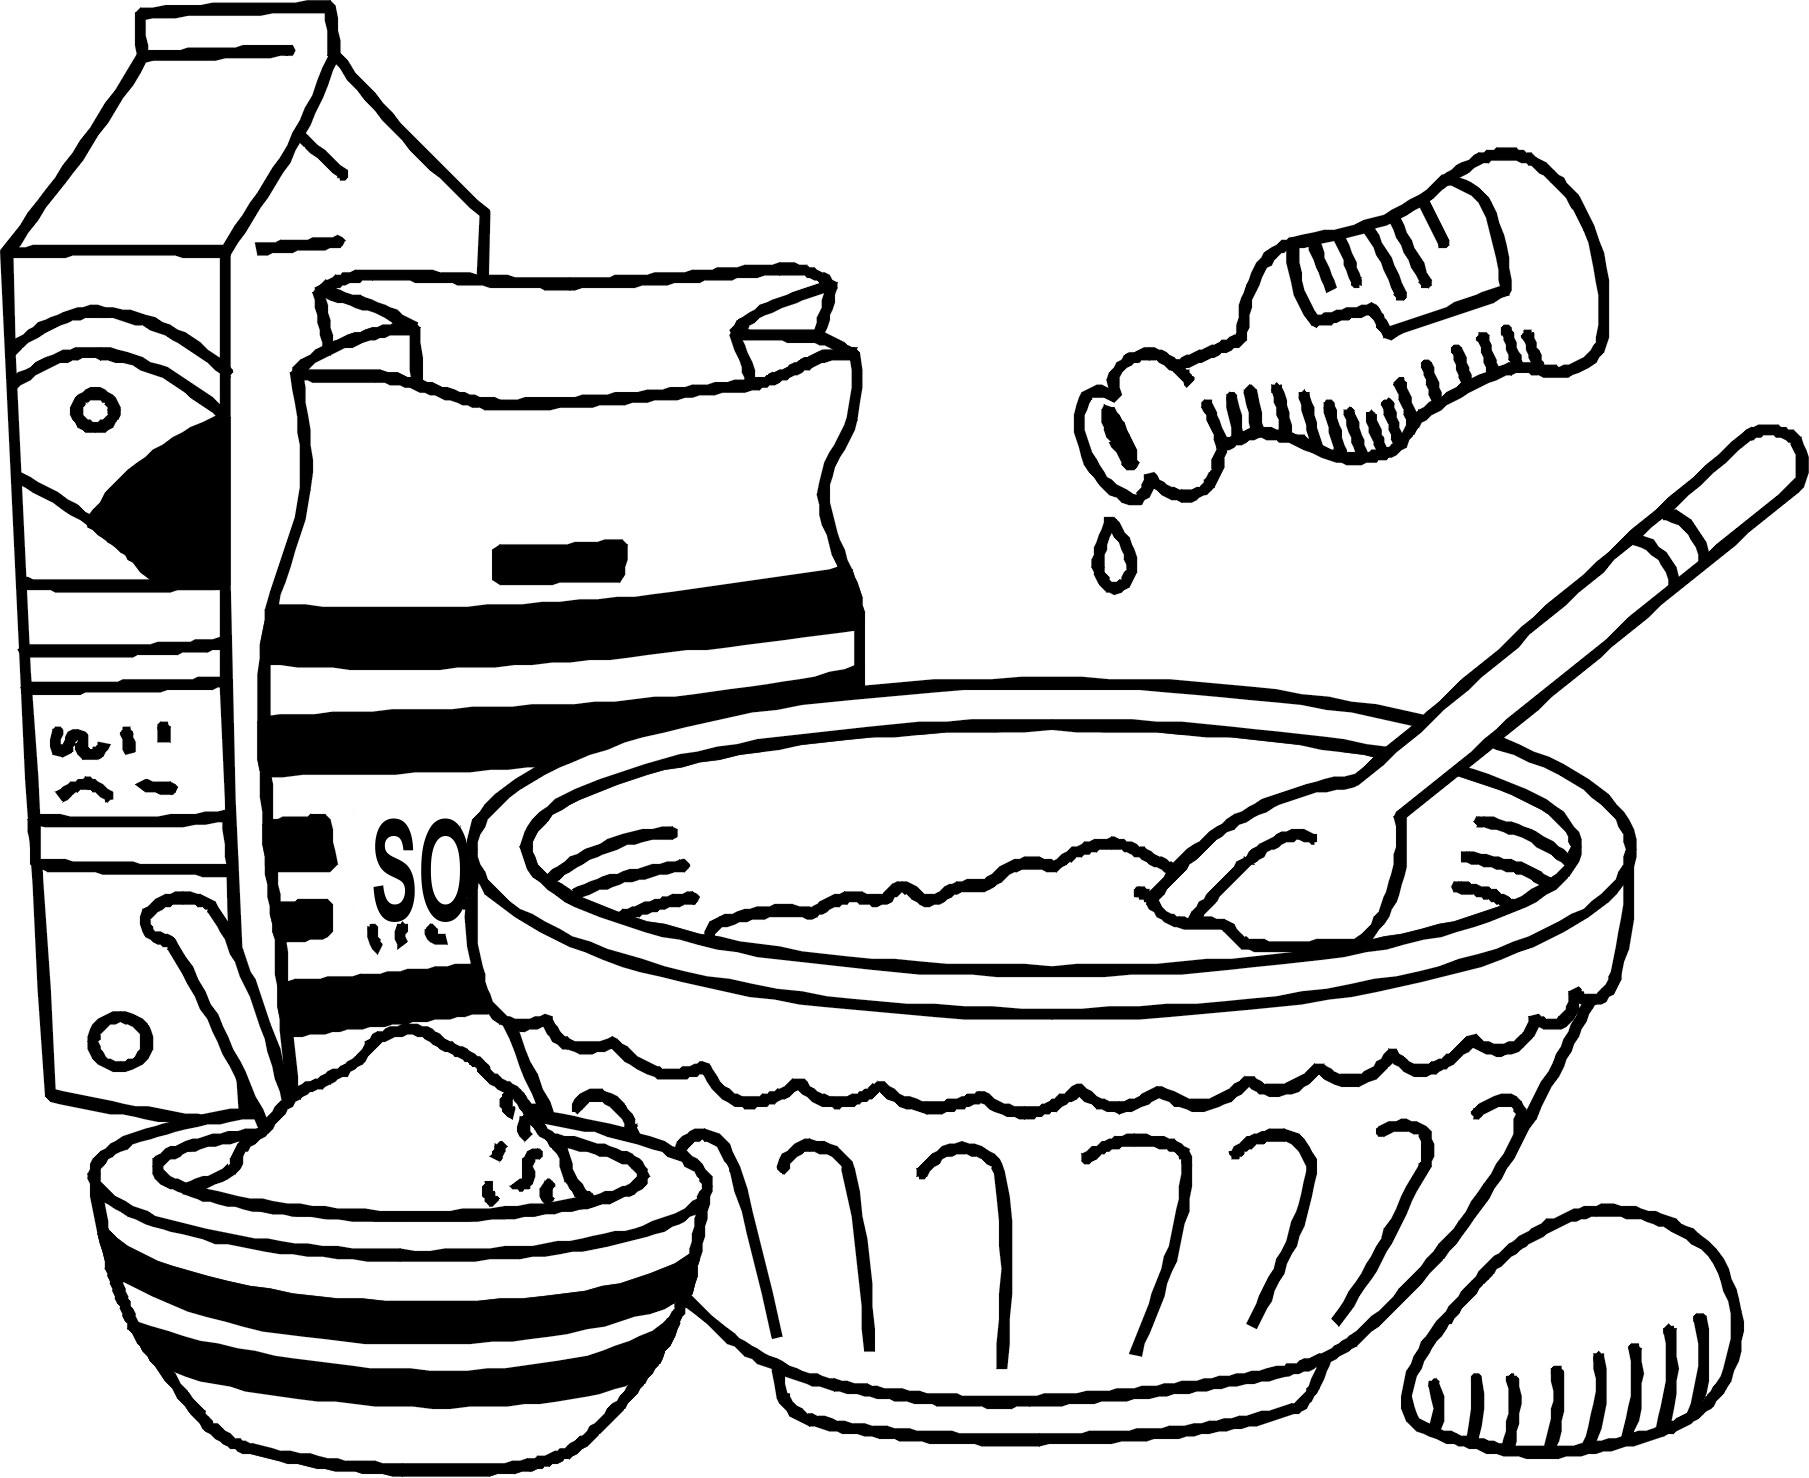 how to get a baking license